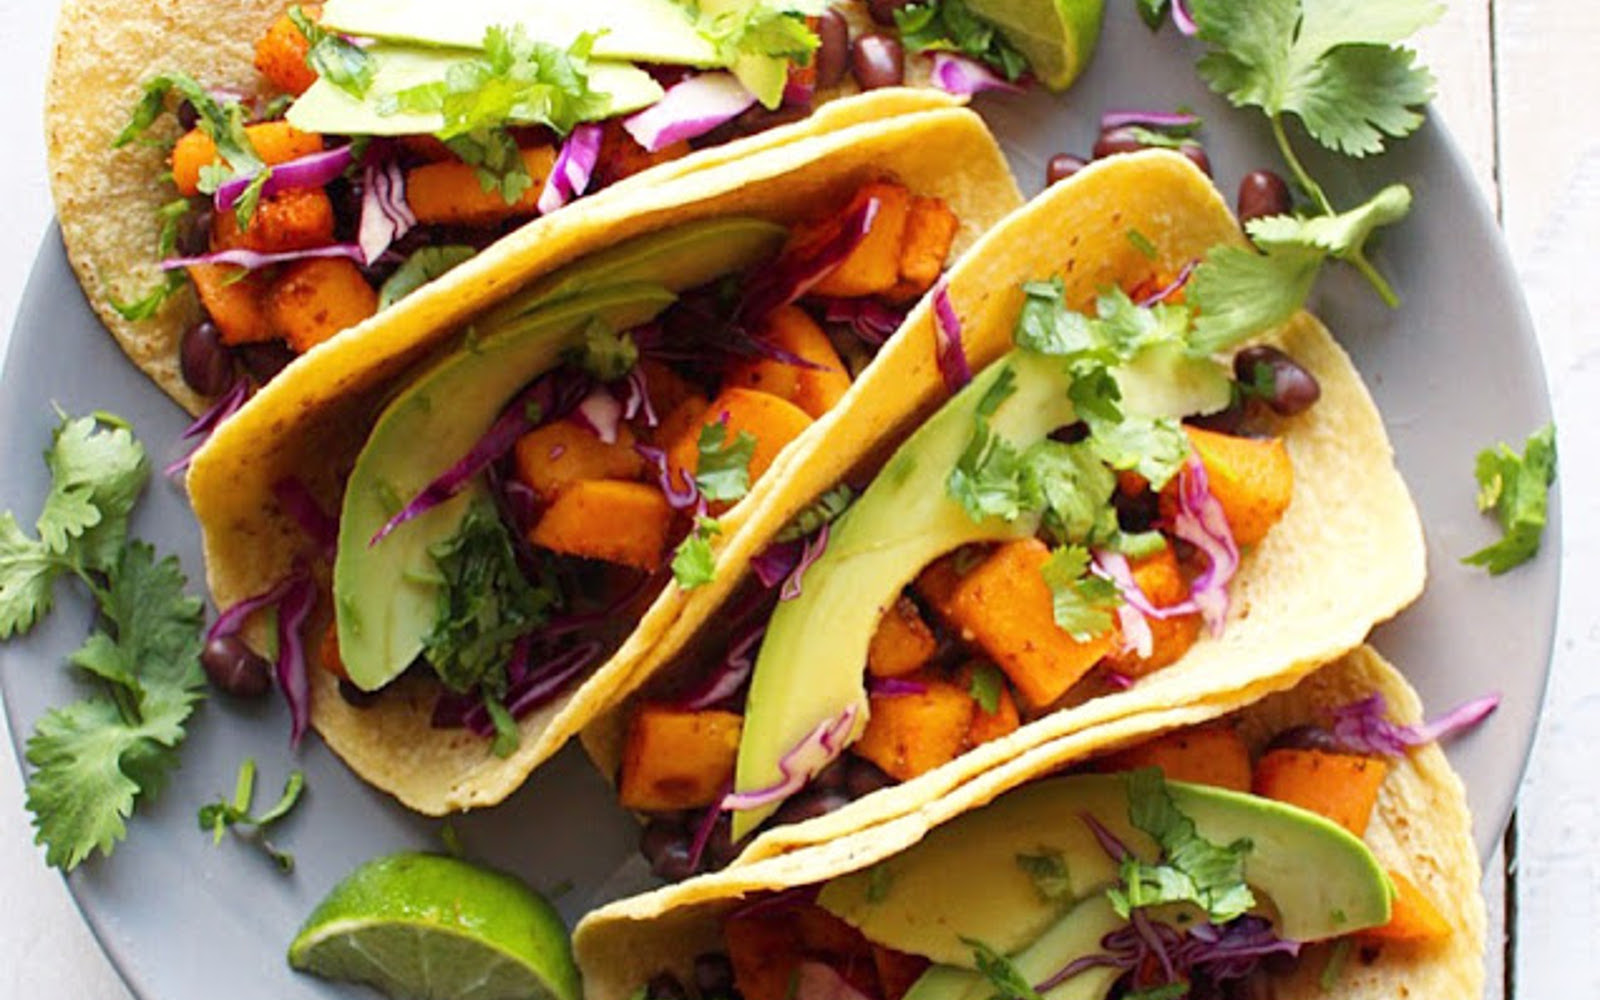 Vegan Chili Roasted Butternut Squash Tacos